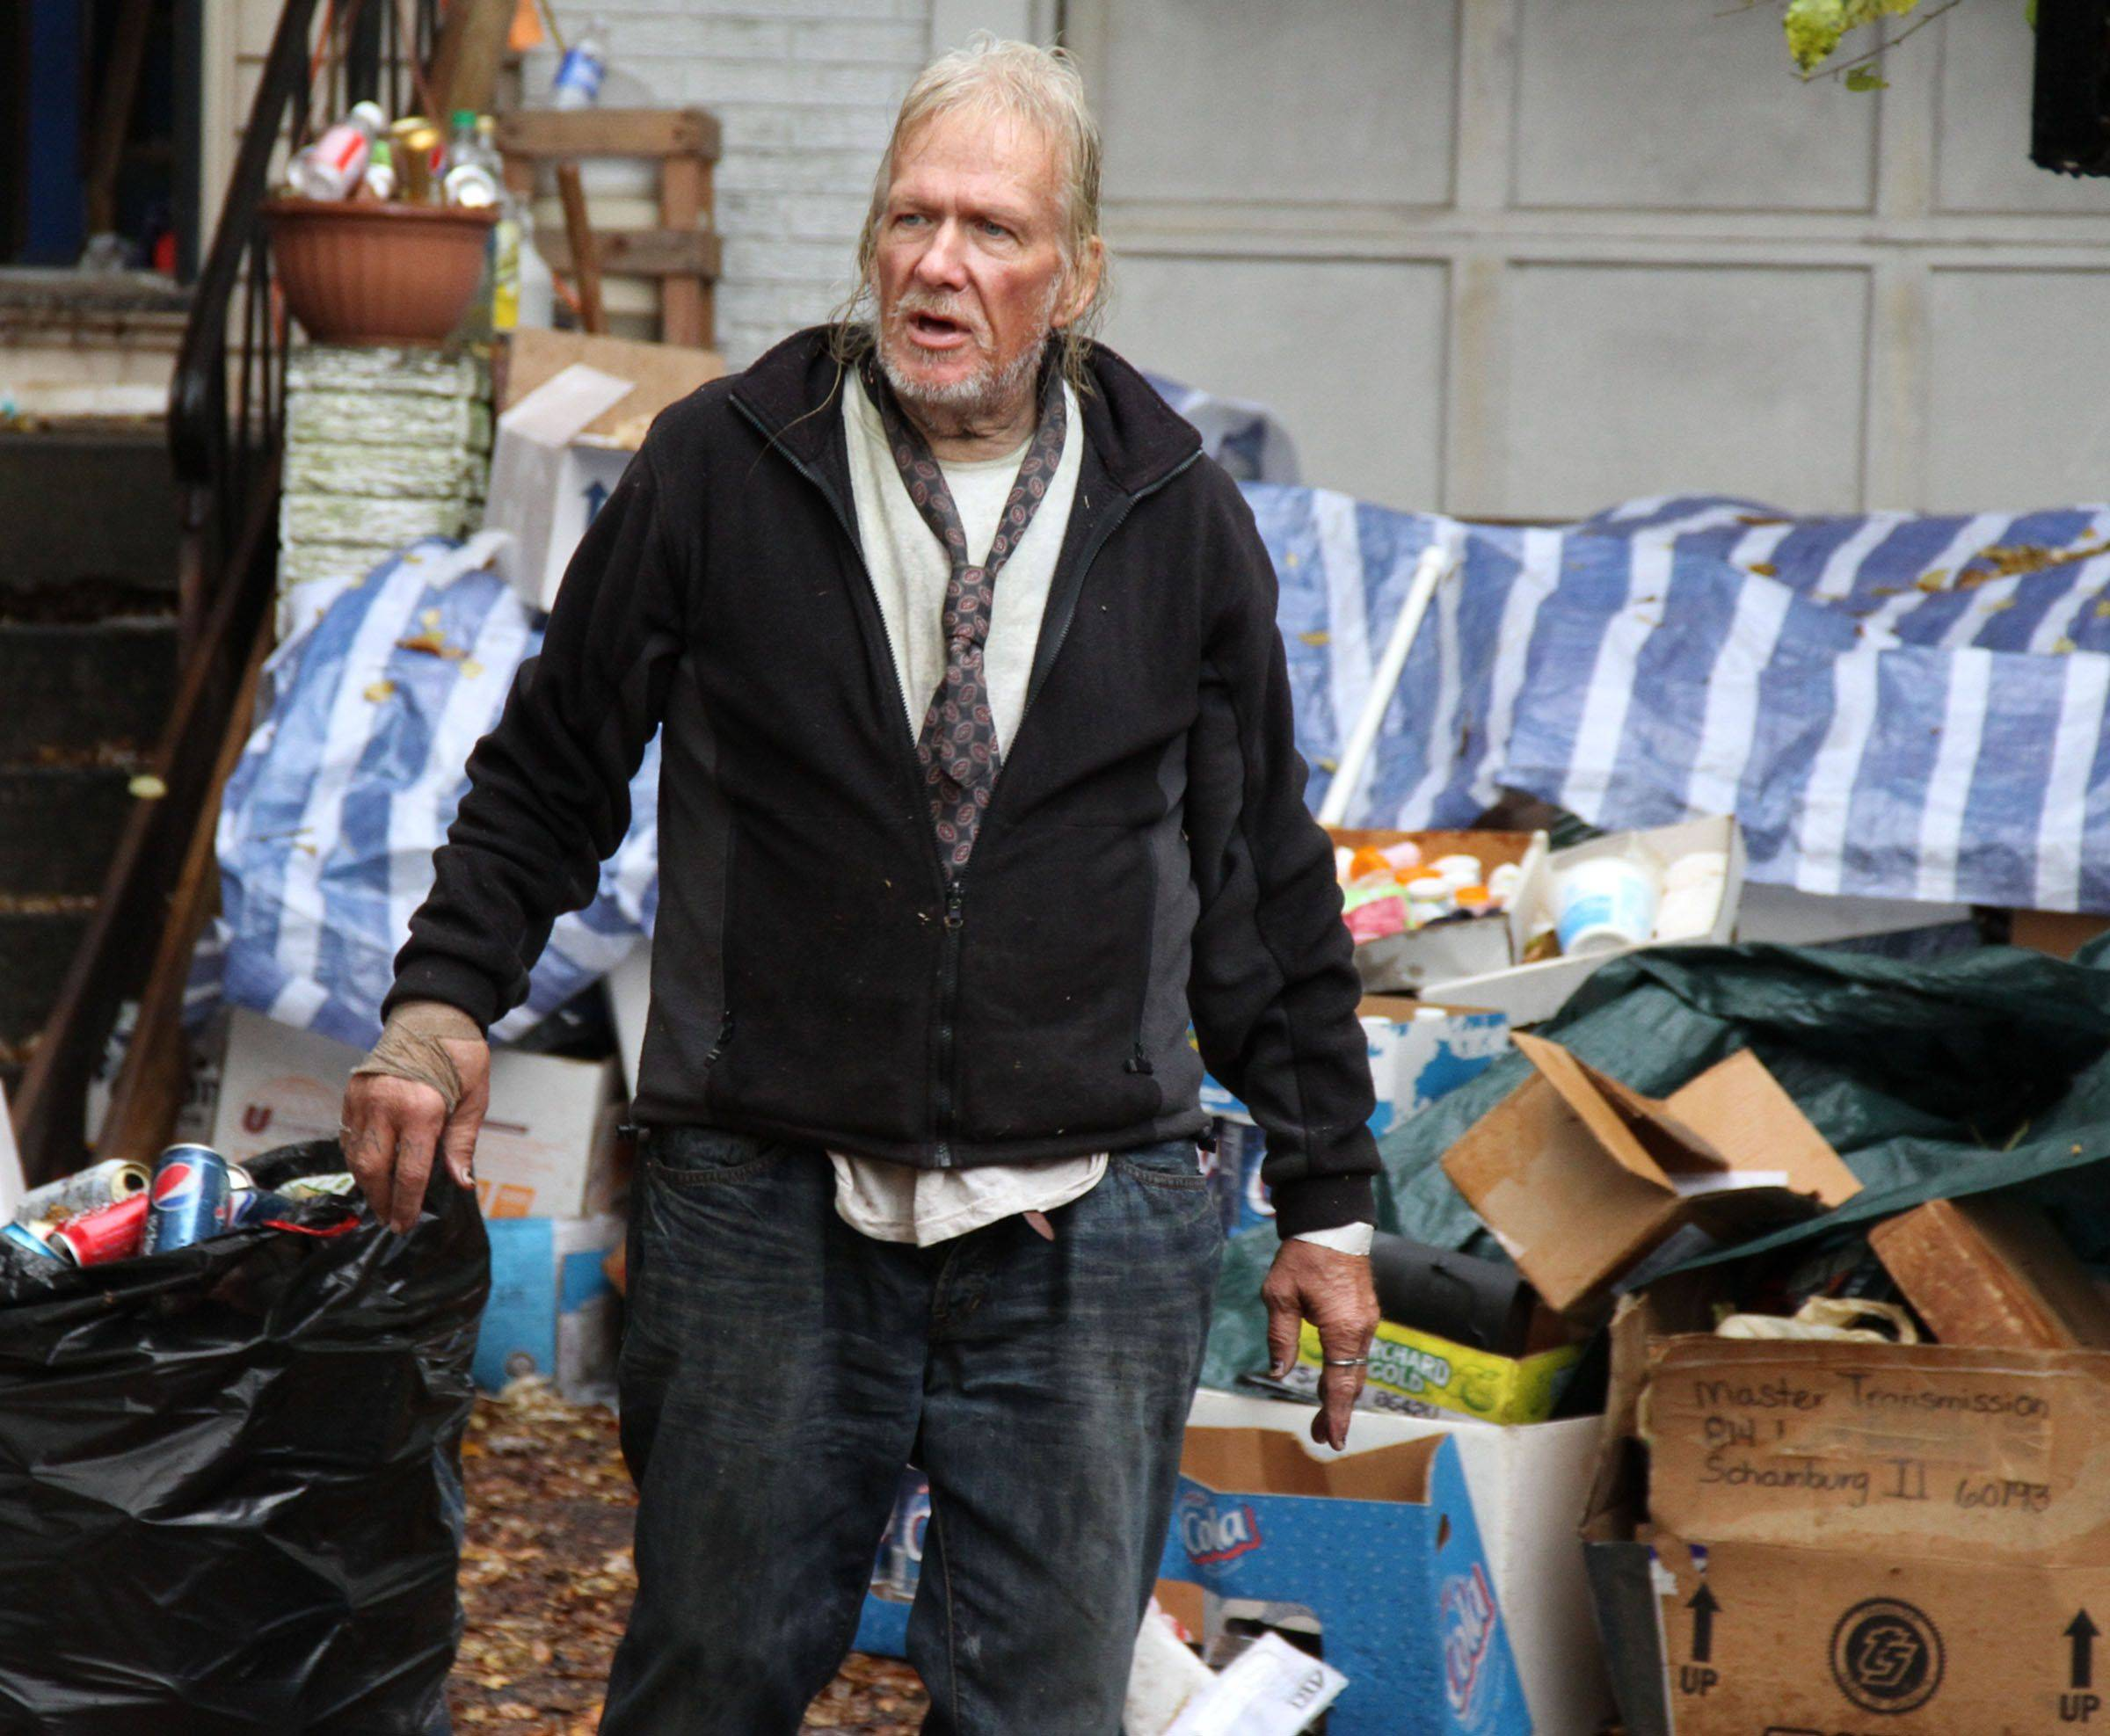 John Wuerffel gathers recycled items he is trying to save as workers from Junk King remove items from his house, backyard, and front yard on Hampton Lane in Schaumburg